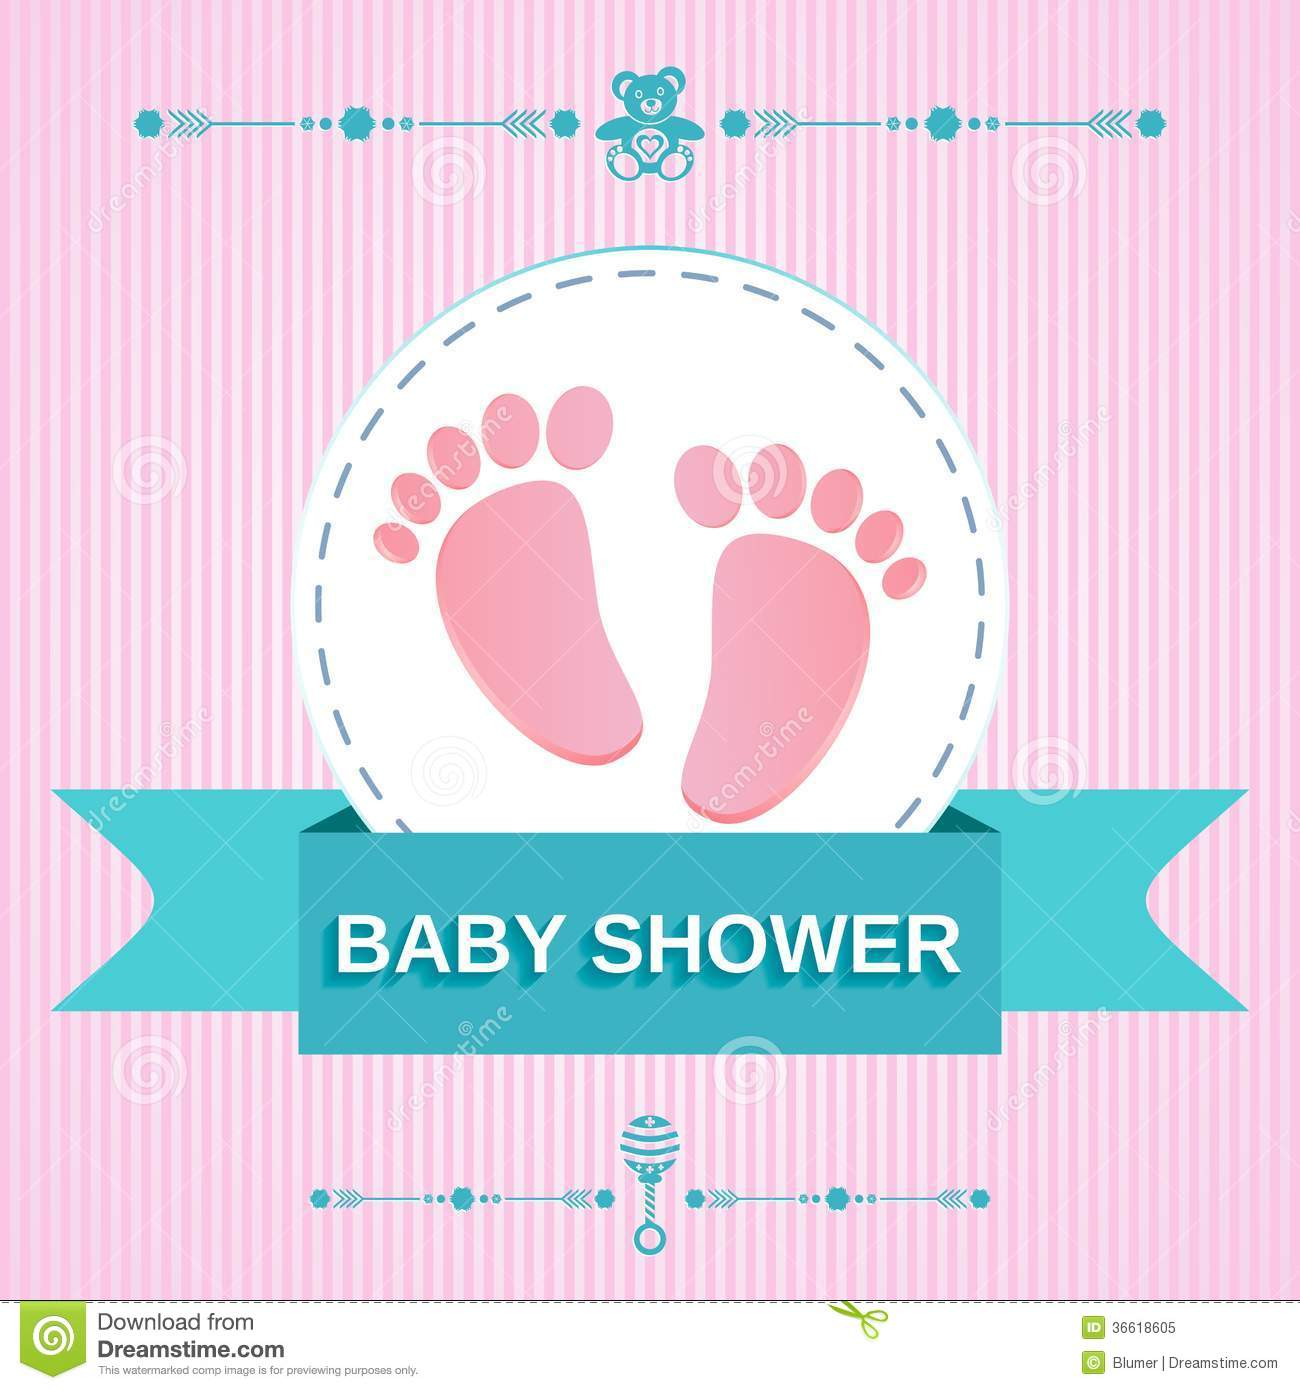 Baby shower design stock illustration illustration of child 36618605 baby shower design stopboris Image collections